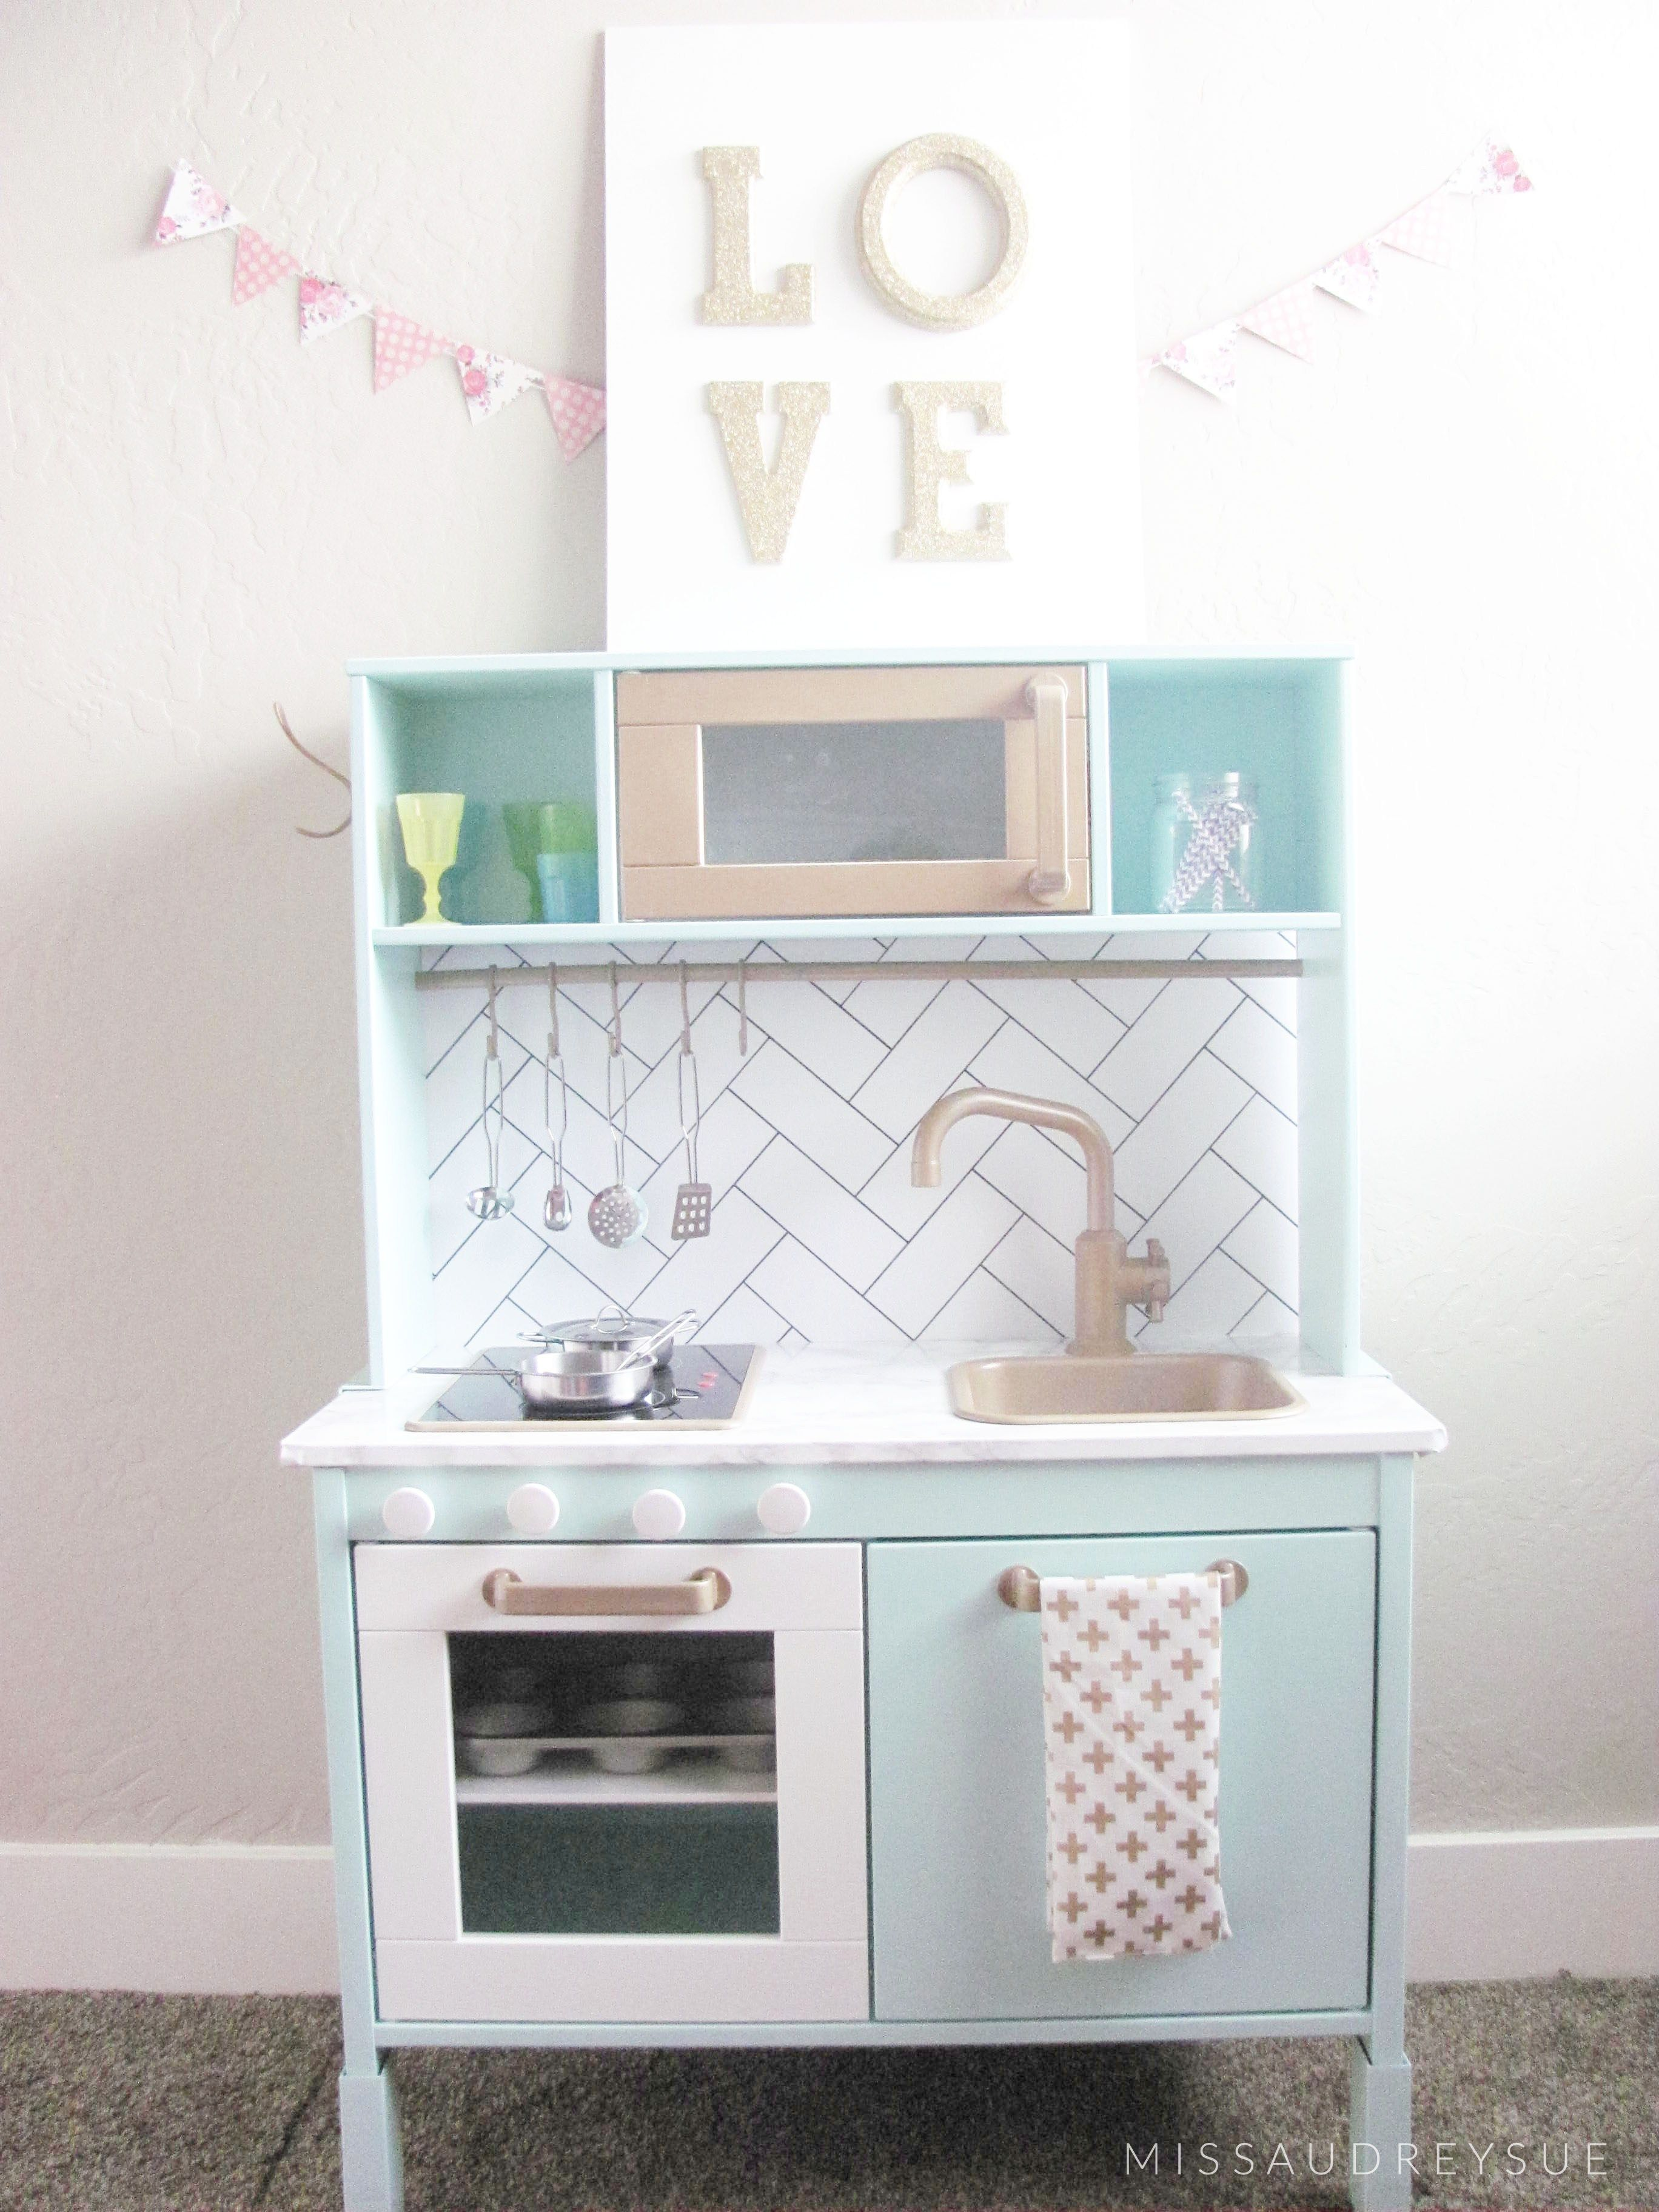 Ikea Miniküche Kinder Ikea Play Kitchen Makeover Miss Audrey Sue Diy Ikea Küche